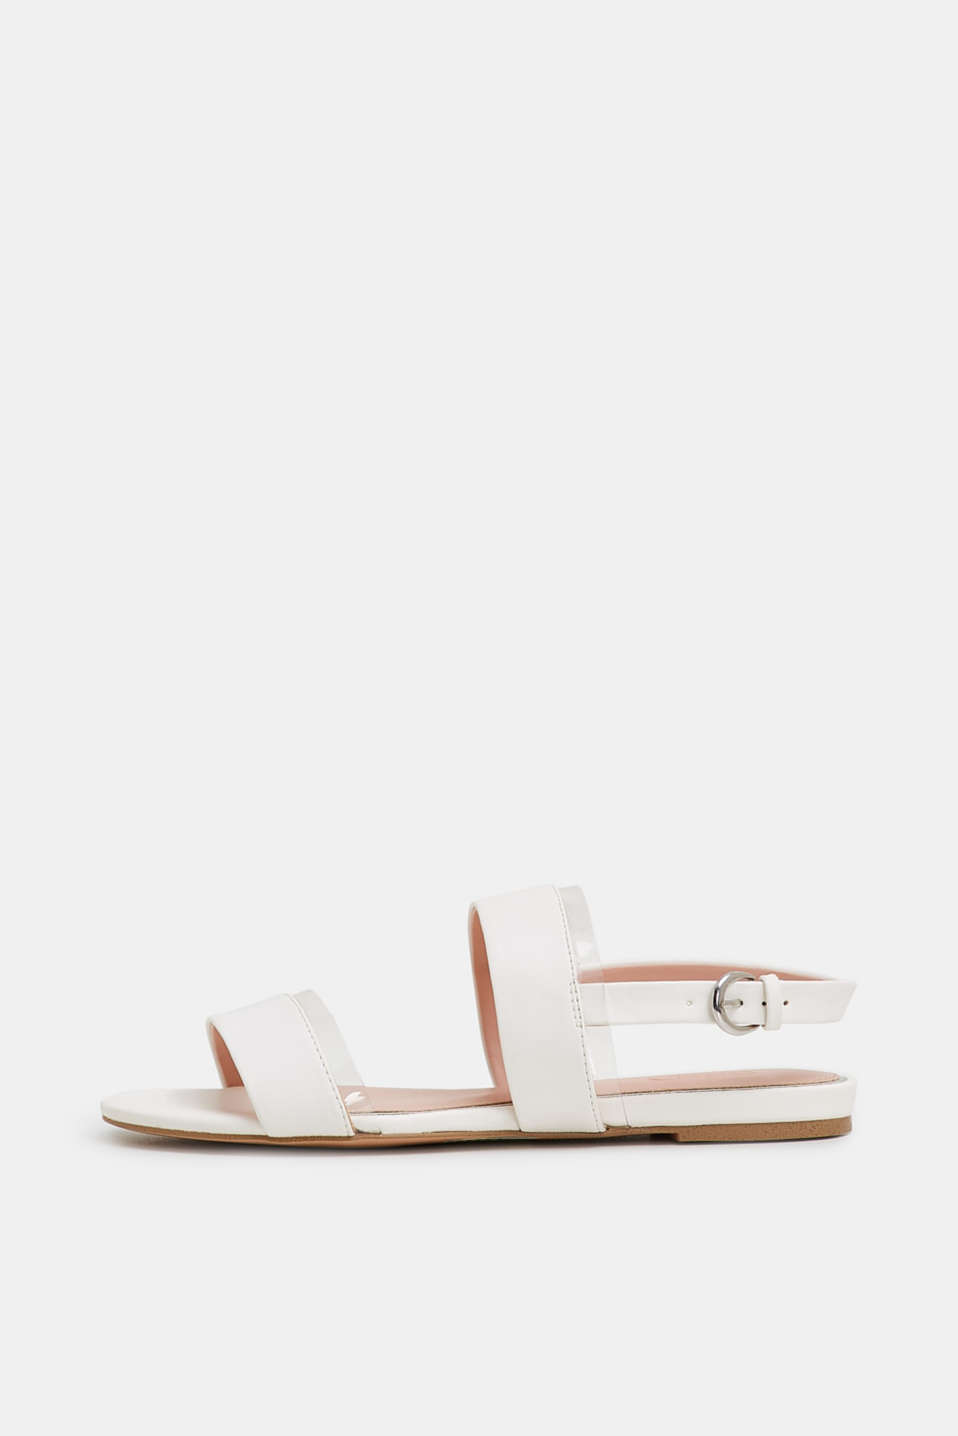 Esprit - Sandals with transparent details, in faux leather